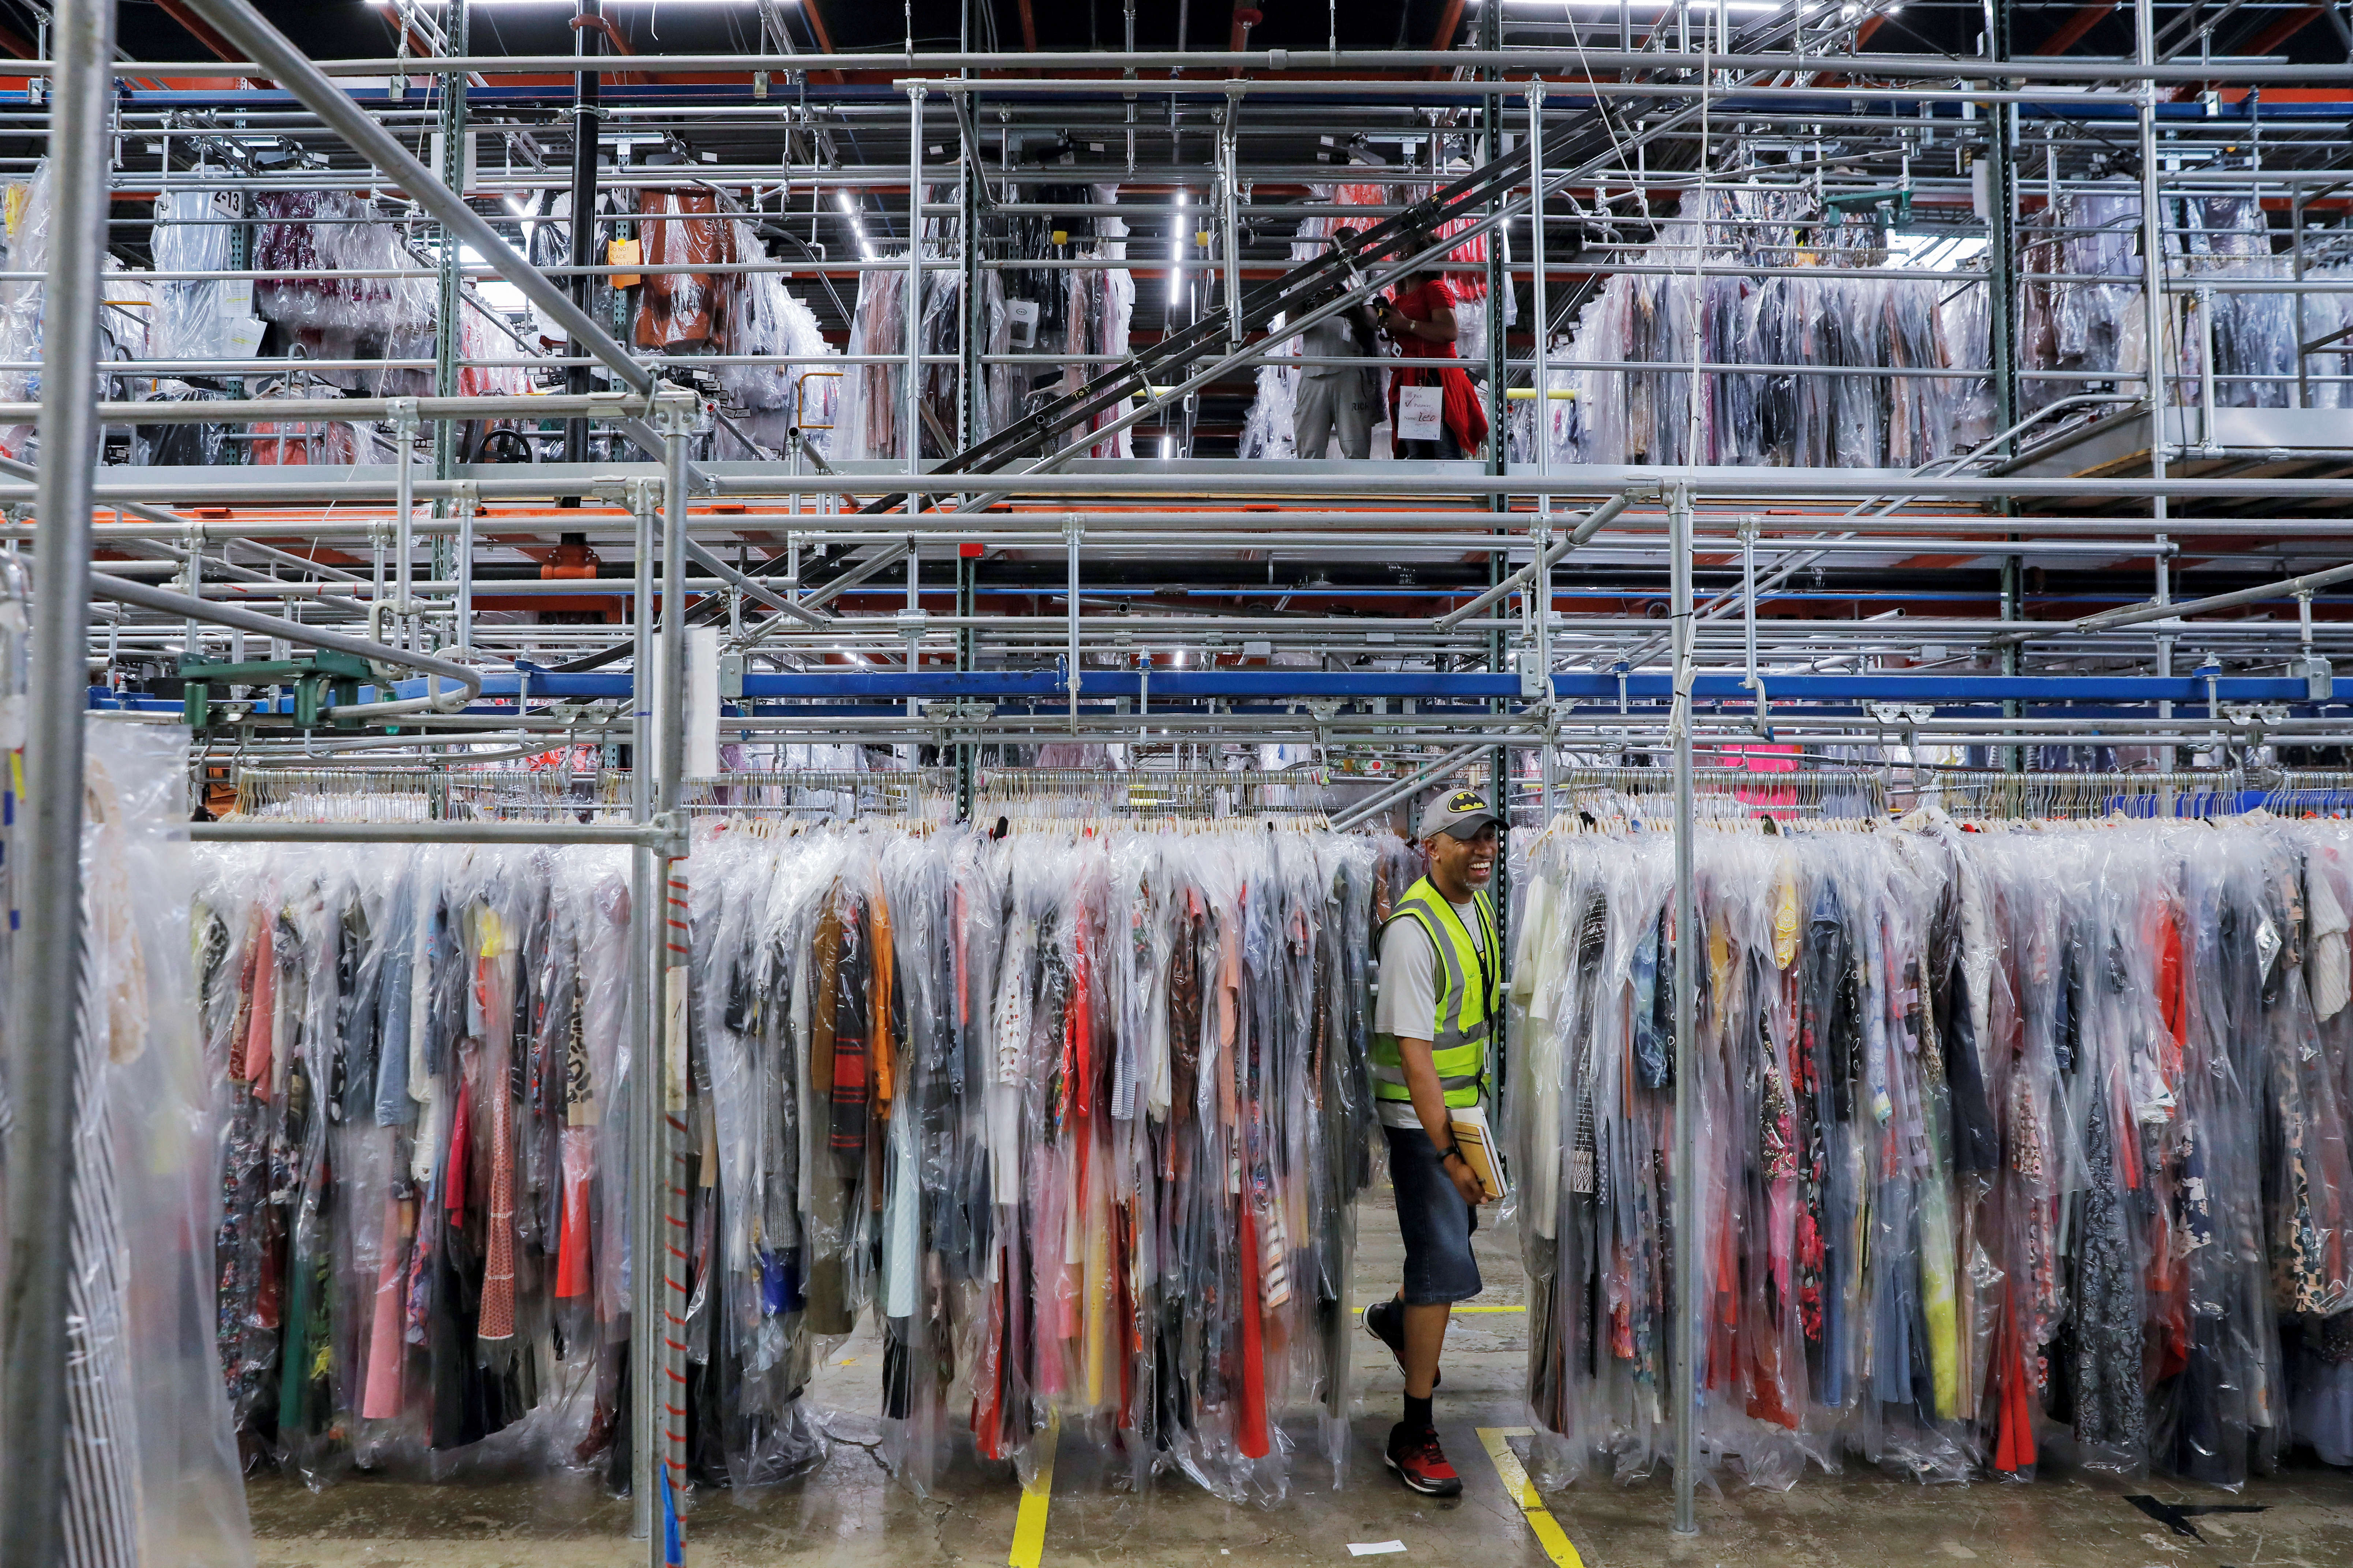 A person moves through clothing in the storage area at Rent the Runway's